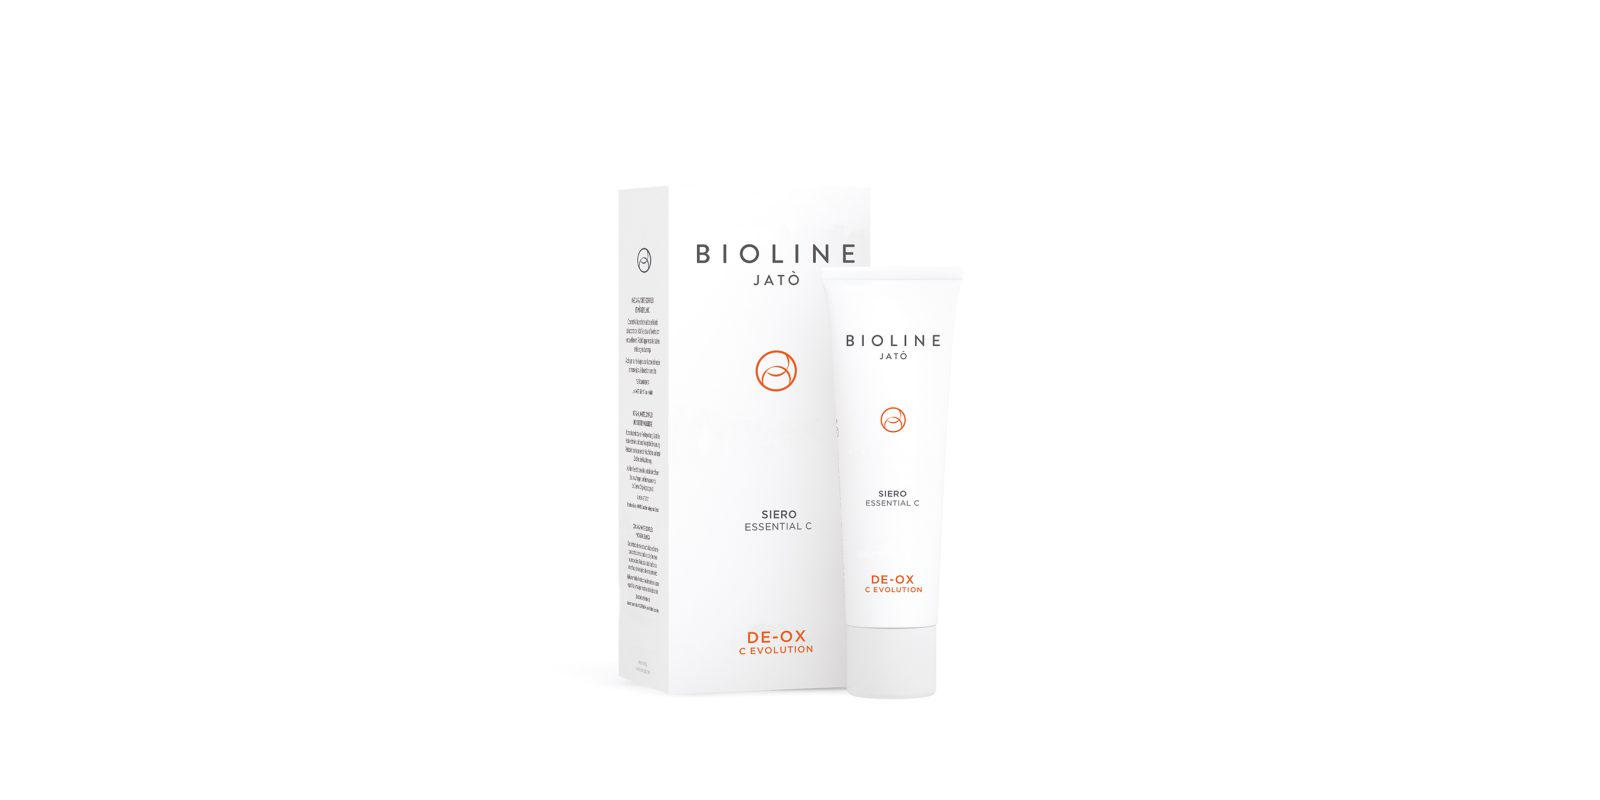 De-Ox C Evolution Serum - Bioline Jatò